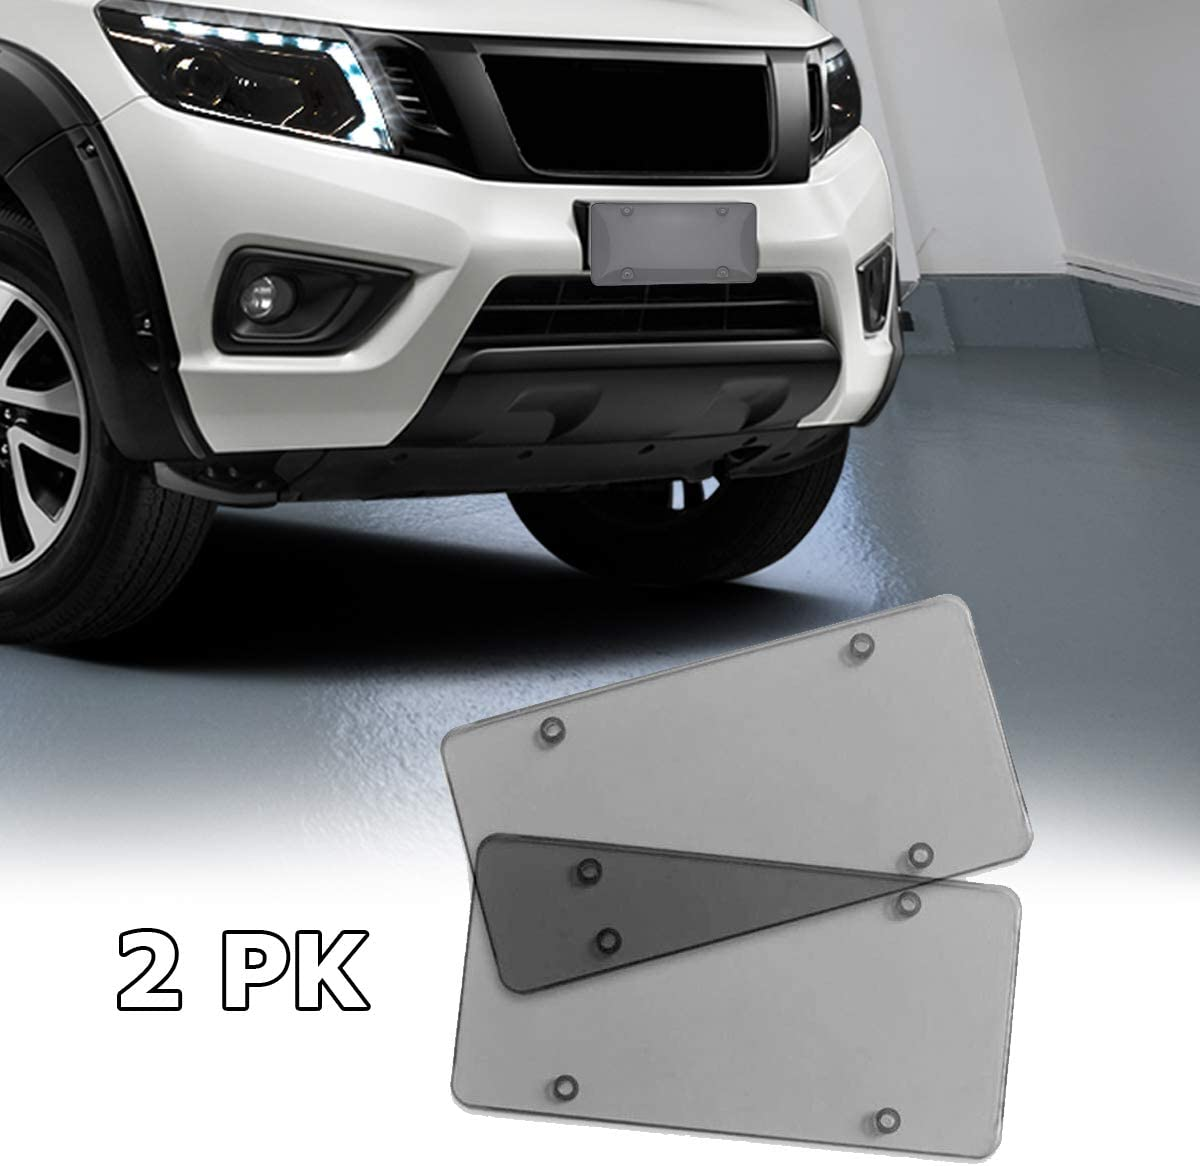 VaygWay Smoked License Plate Cover 2 Pack Novelty License Plate Tinted Smoke Flat Covers Unbreakable Flat License Plate Shield